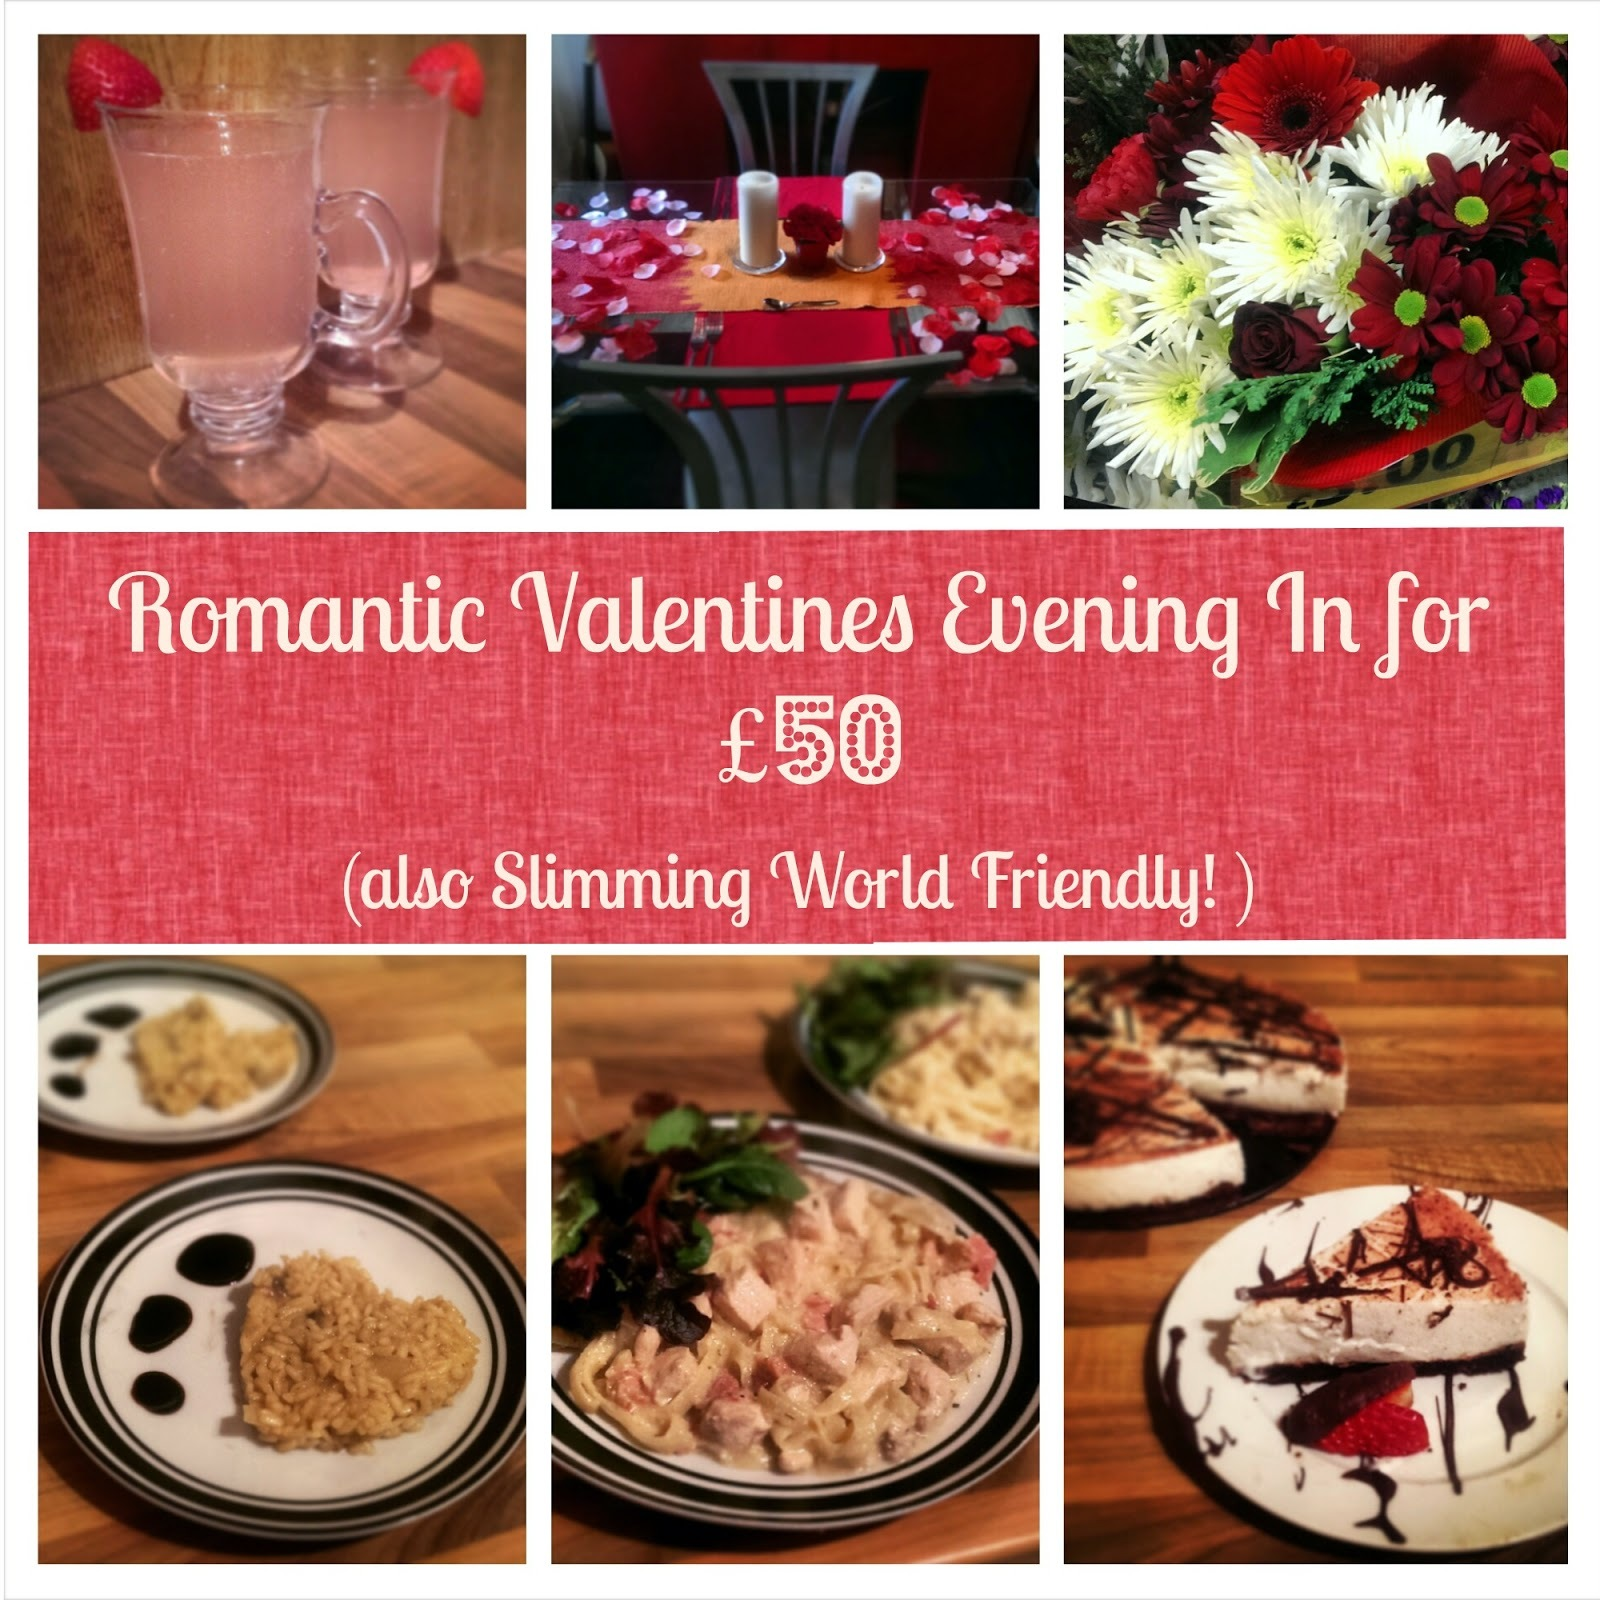 Romantic Valentines Evening For Under £50!